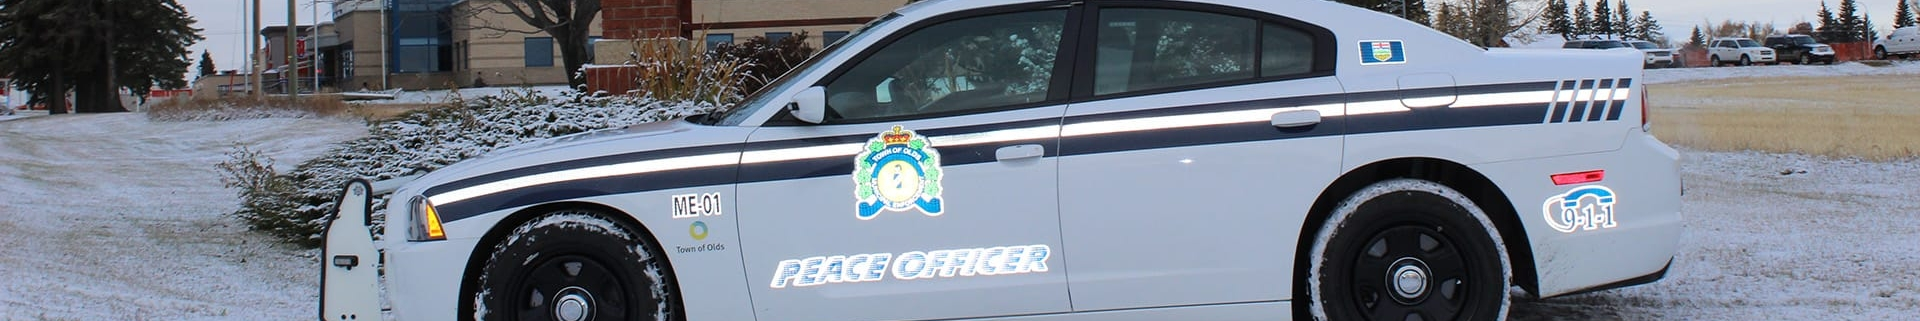 Town of Olds peace officer vehicle in a winter setting